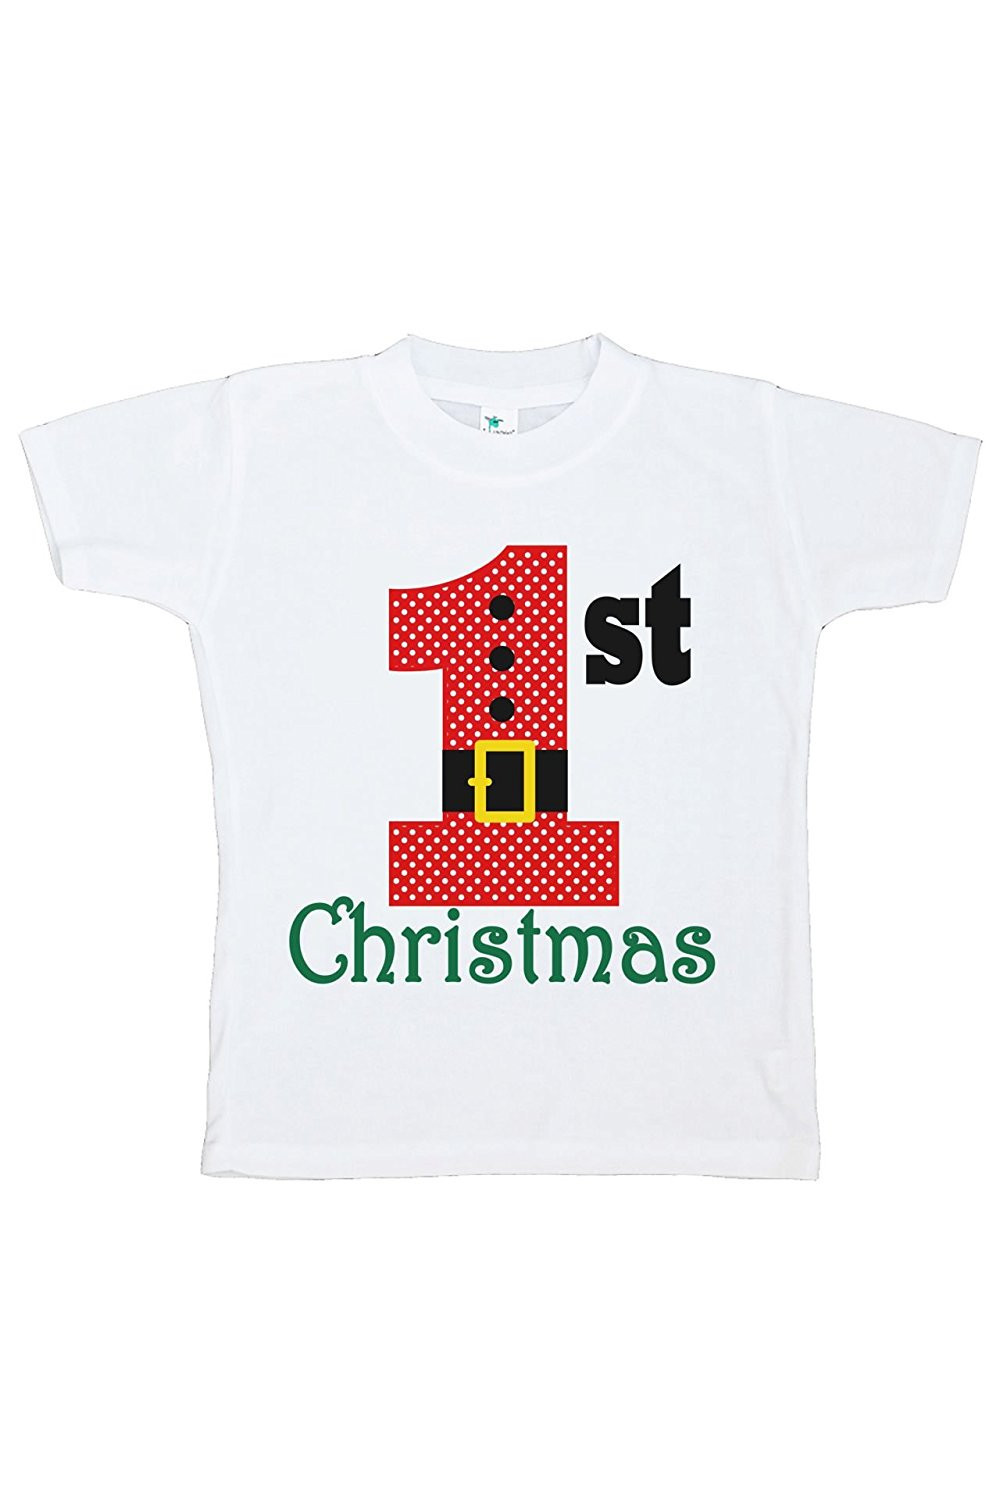 Custom Party Shop Youth 1st Christmas Raglan Shirt Red